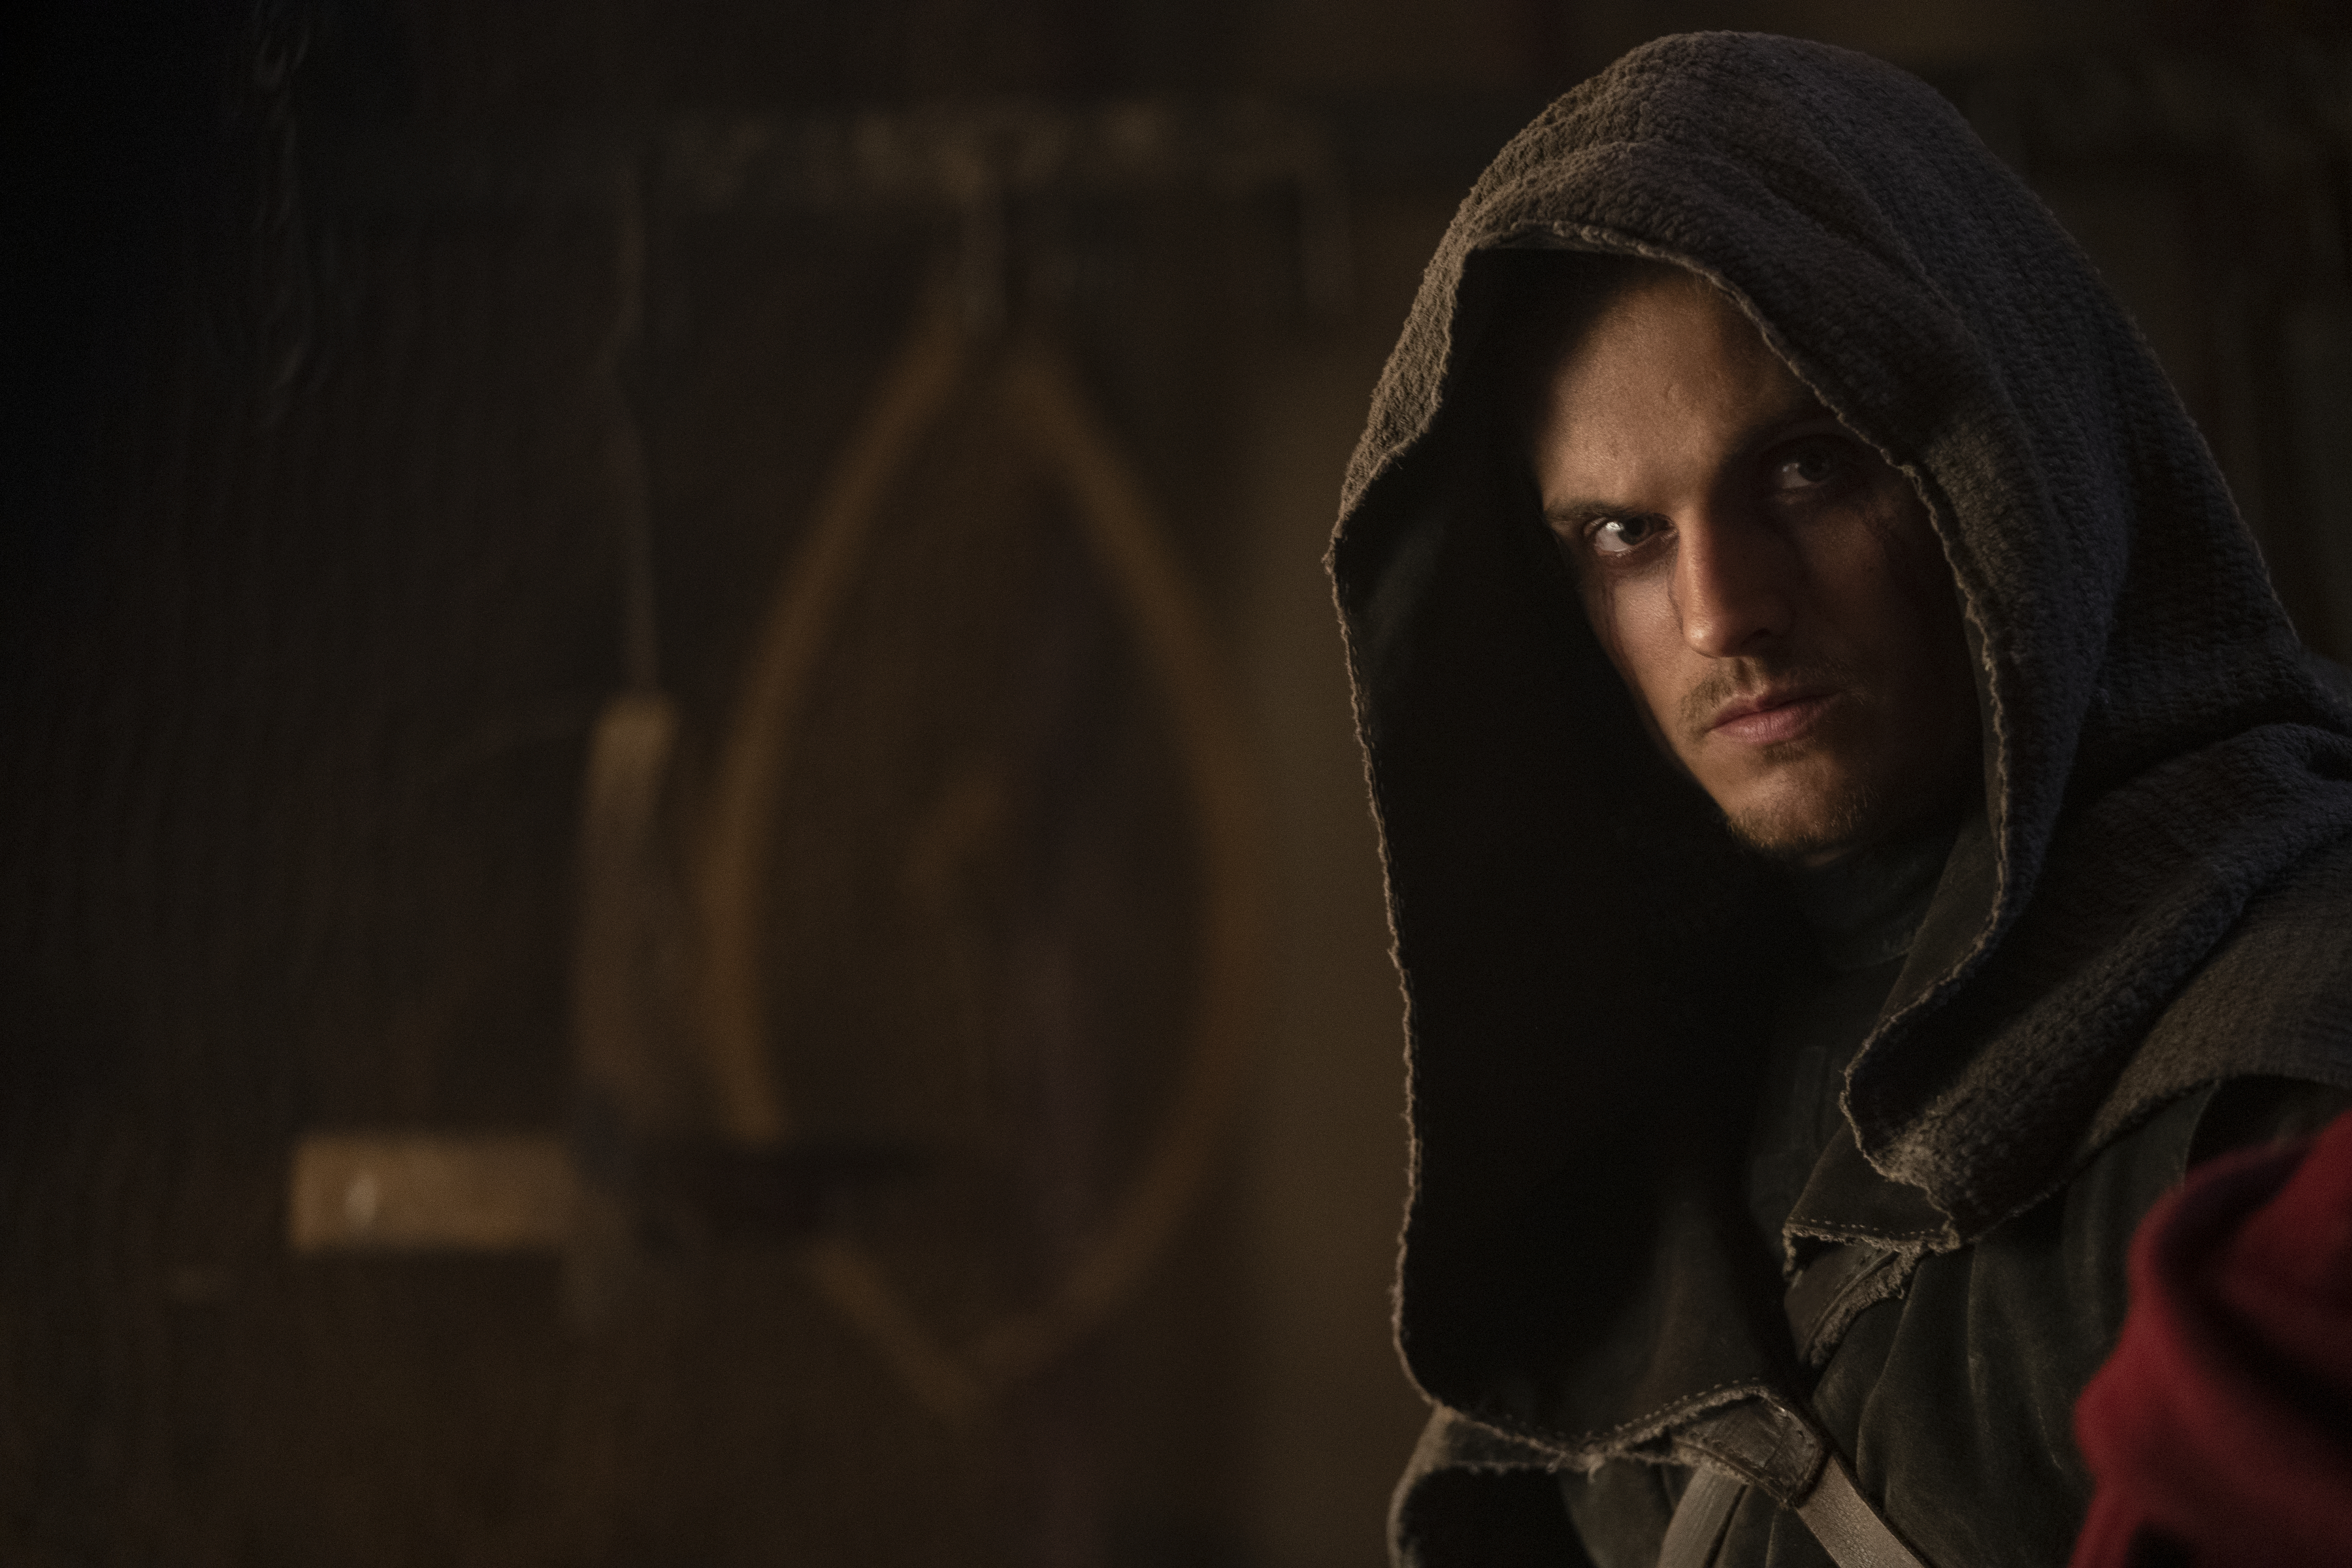 [Image description: The Weeping Monk from Cursed - actor Daniel Sharman wearing a hood and eyes weeping dark tears] Via Netflix